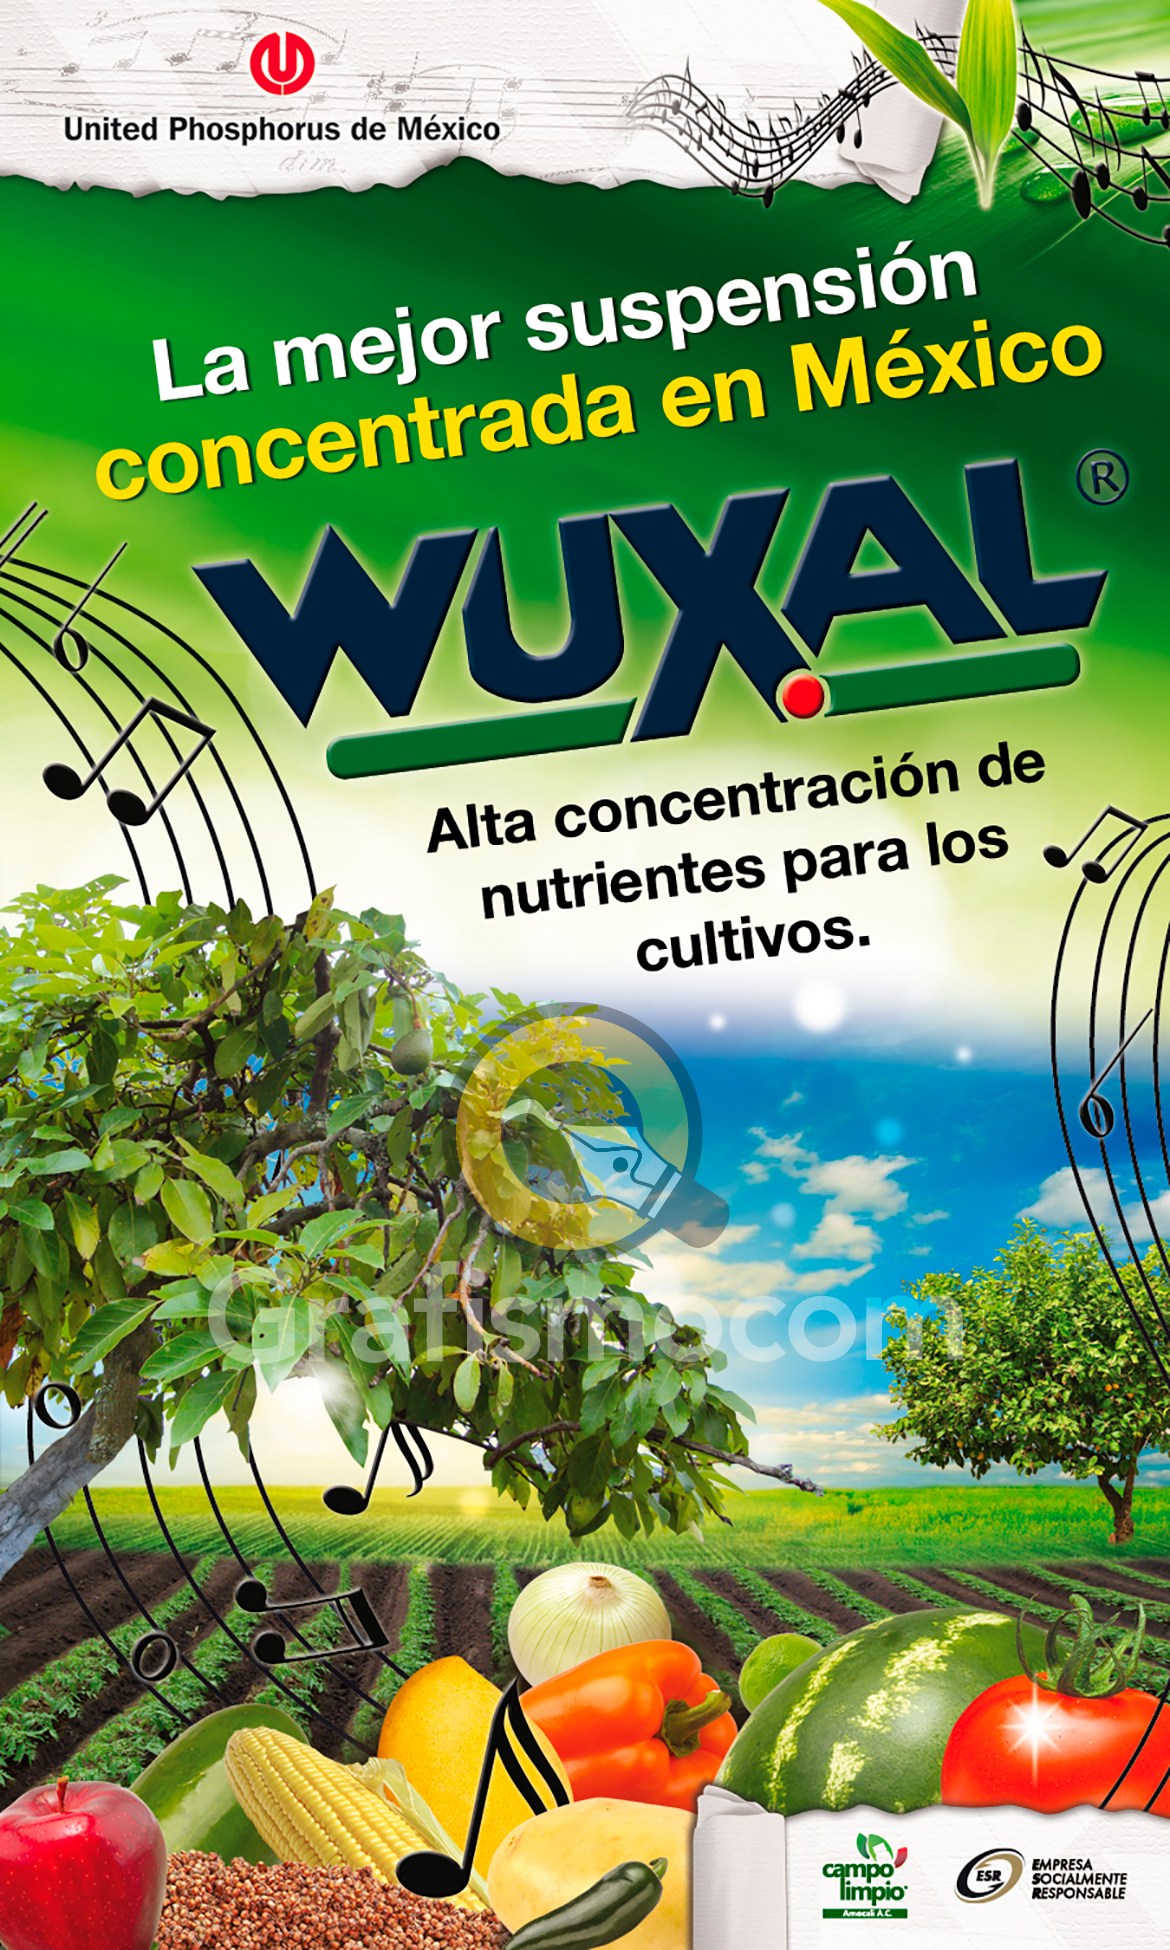 Wuxales UPL